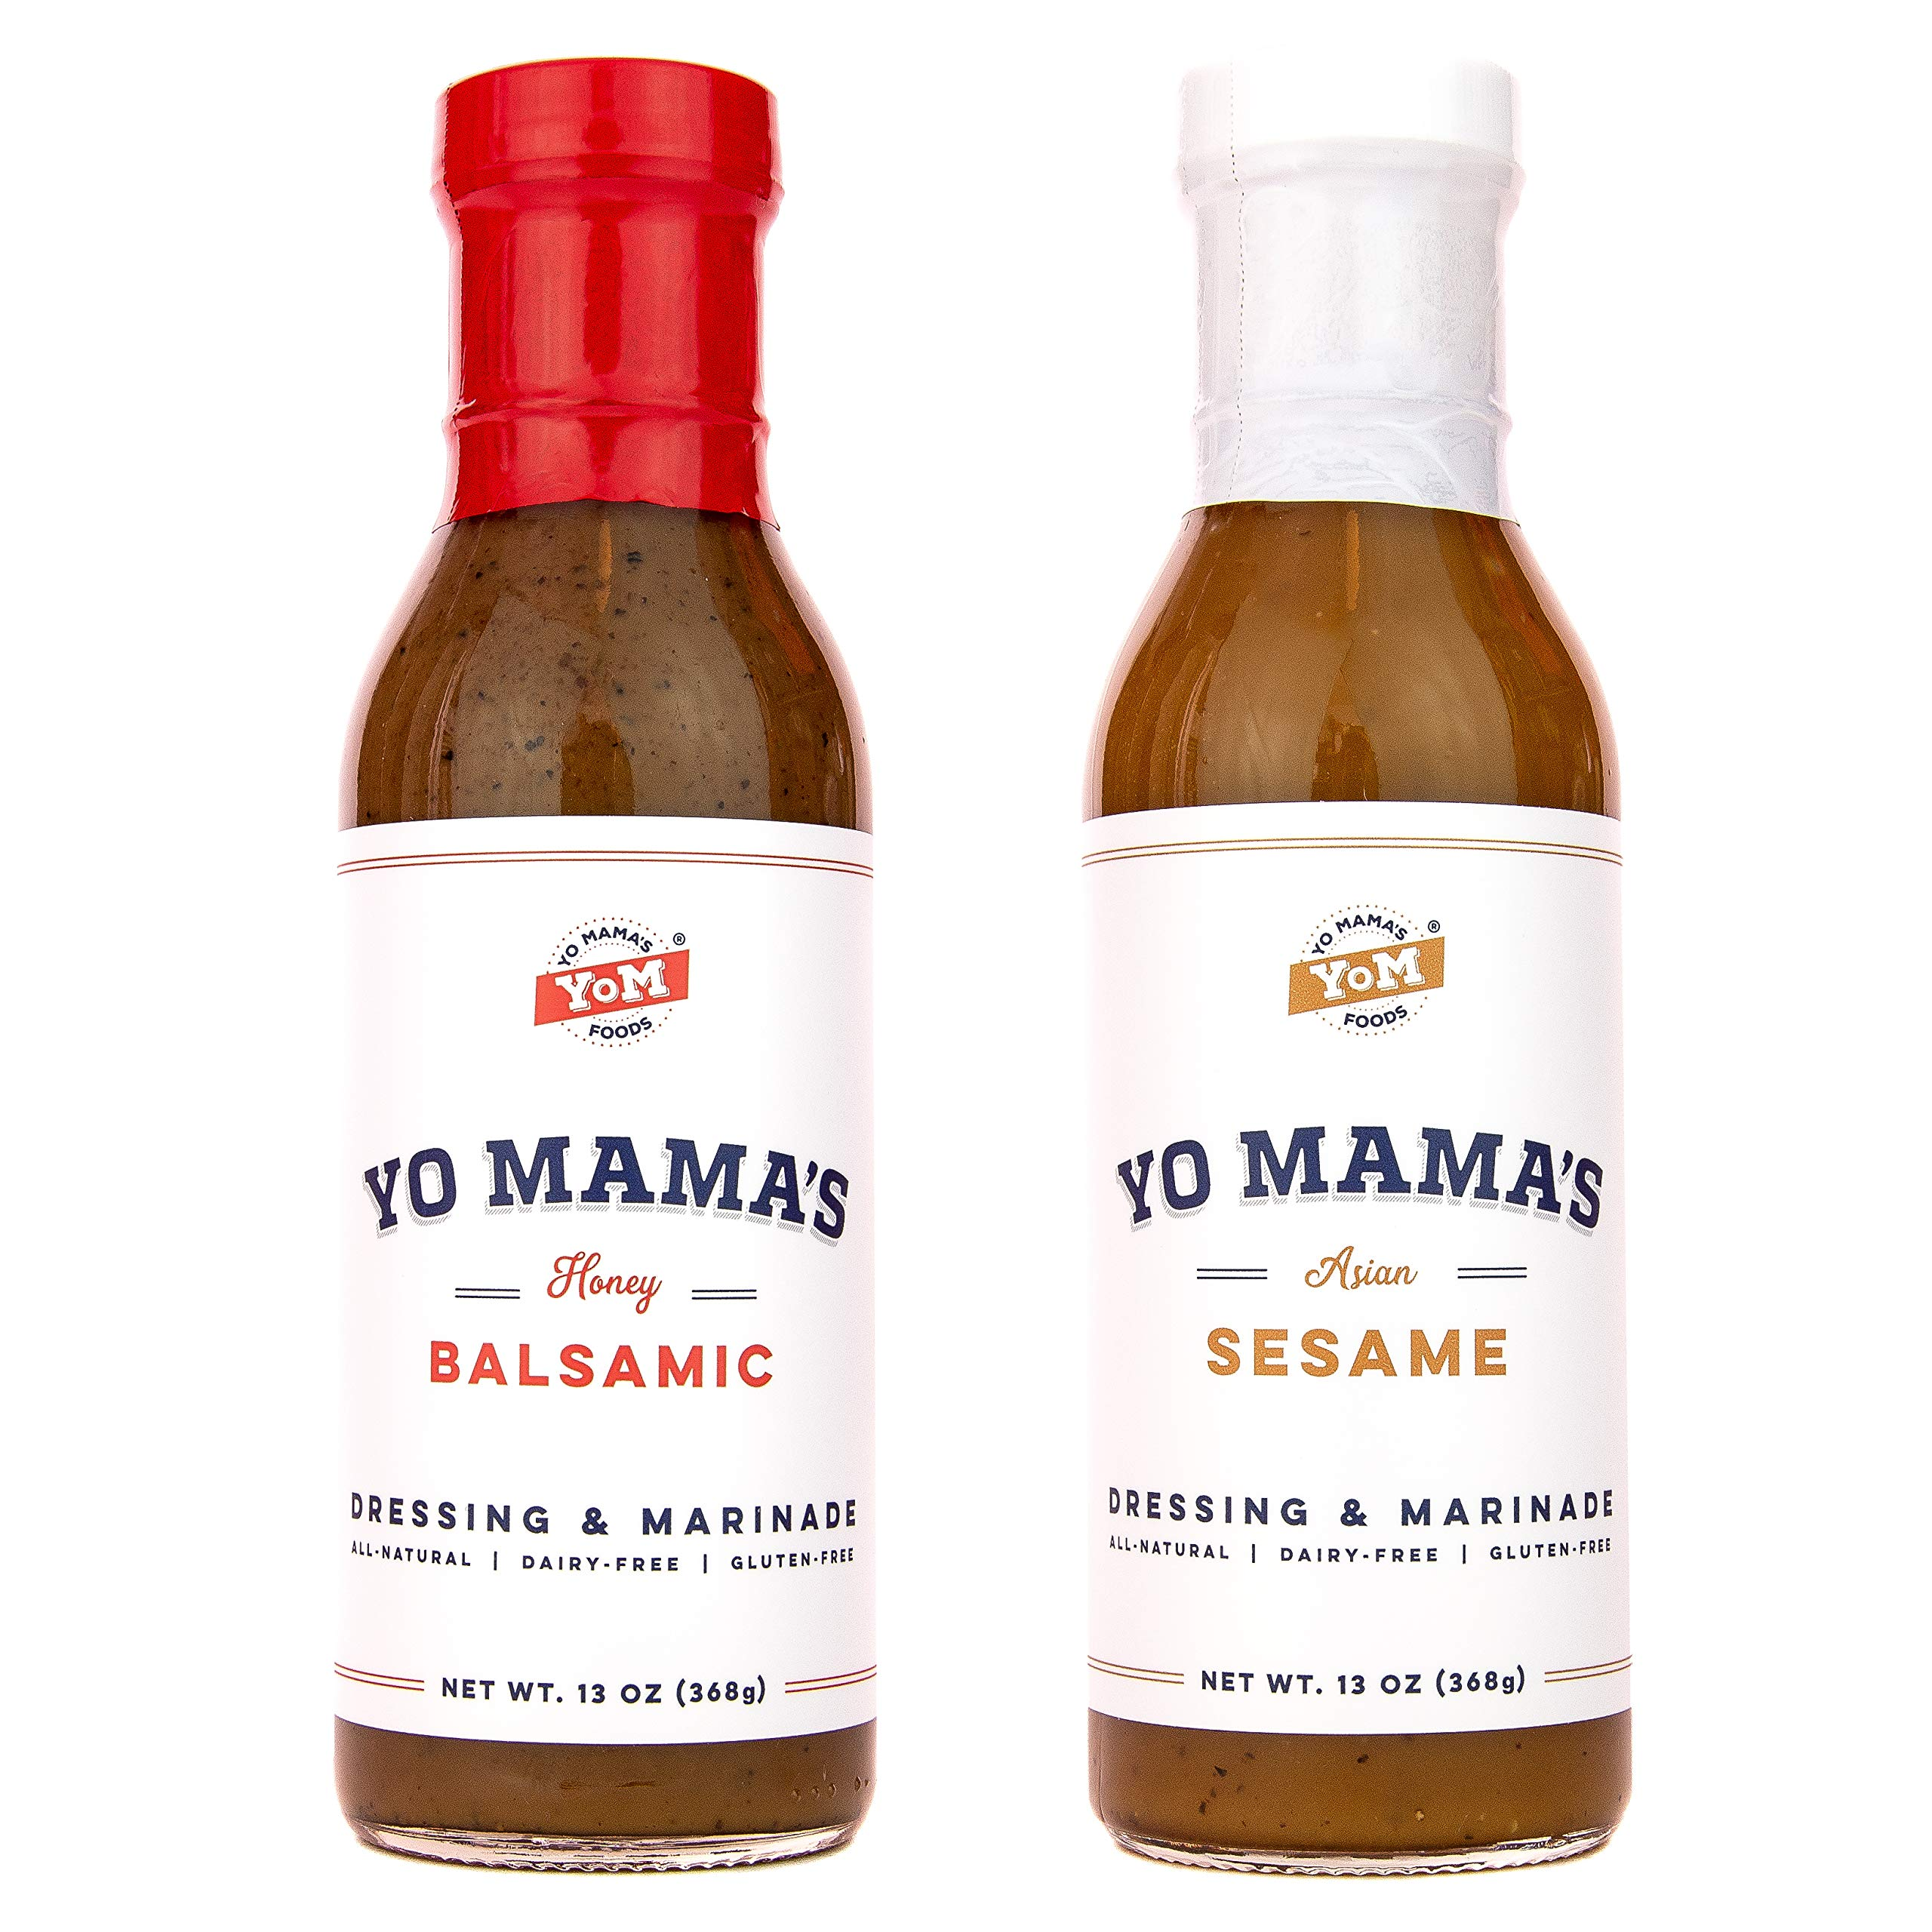 Gourmet Natural Salad Dressing and Marinade Combo Pack by Yo Mama's Foods - (1) 15 oz Bottle Bold Balsamic and (1) 13 oz Bottle Zesty Sesame - Low Sugar, Low Carb, Low Sodium, and Gluten-Free!